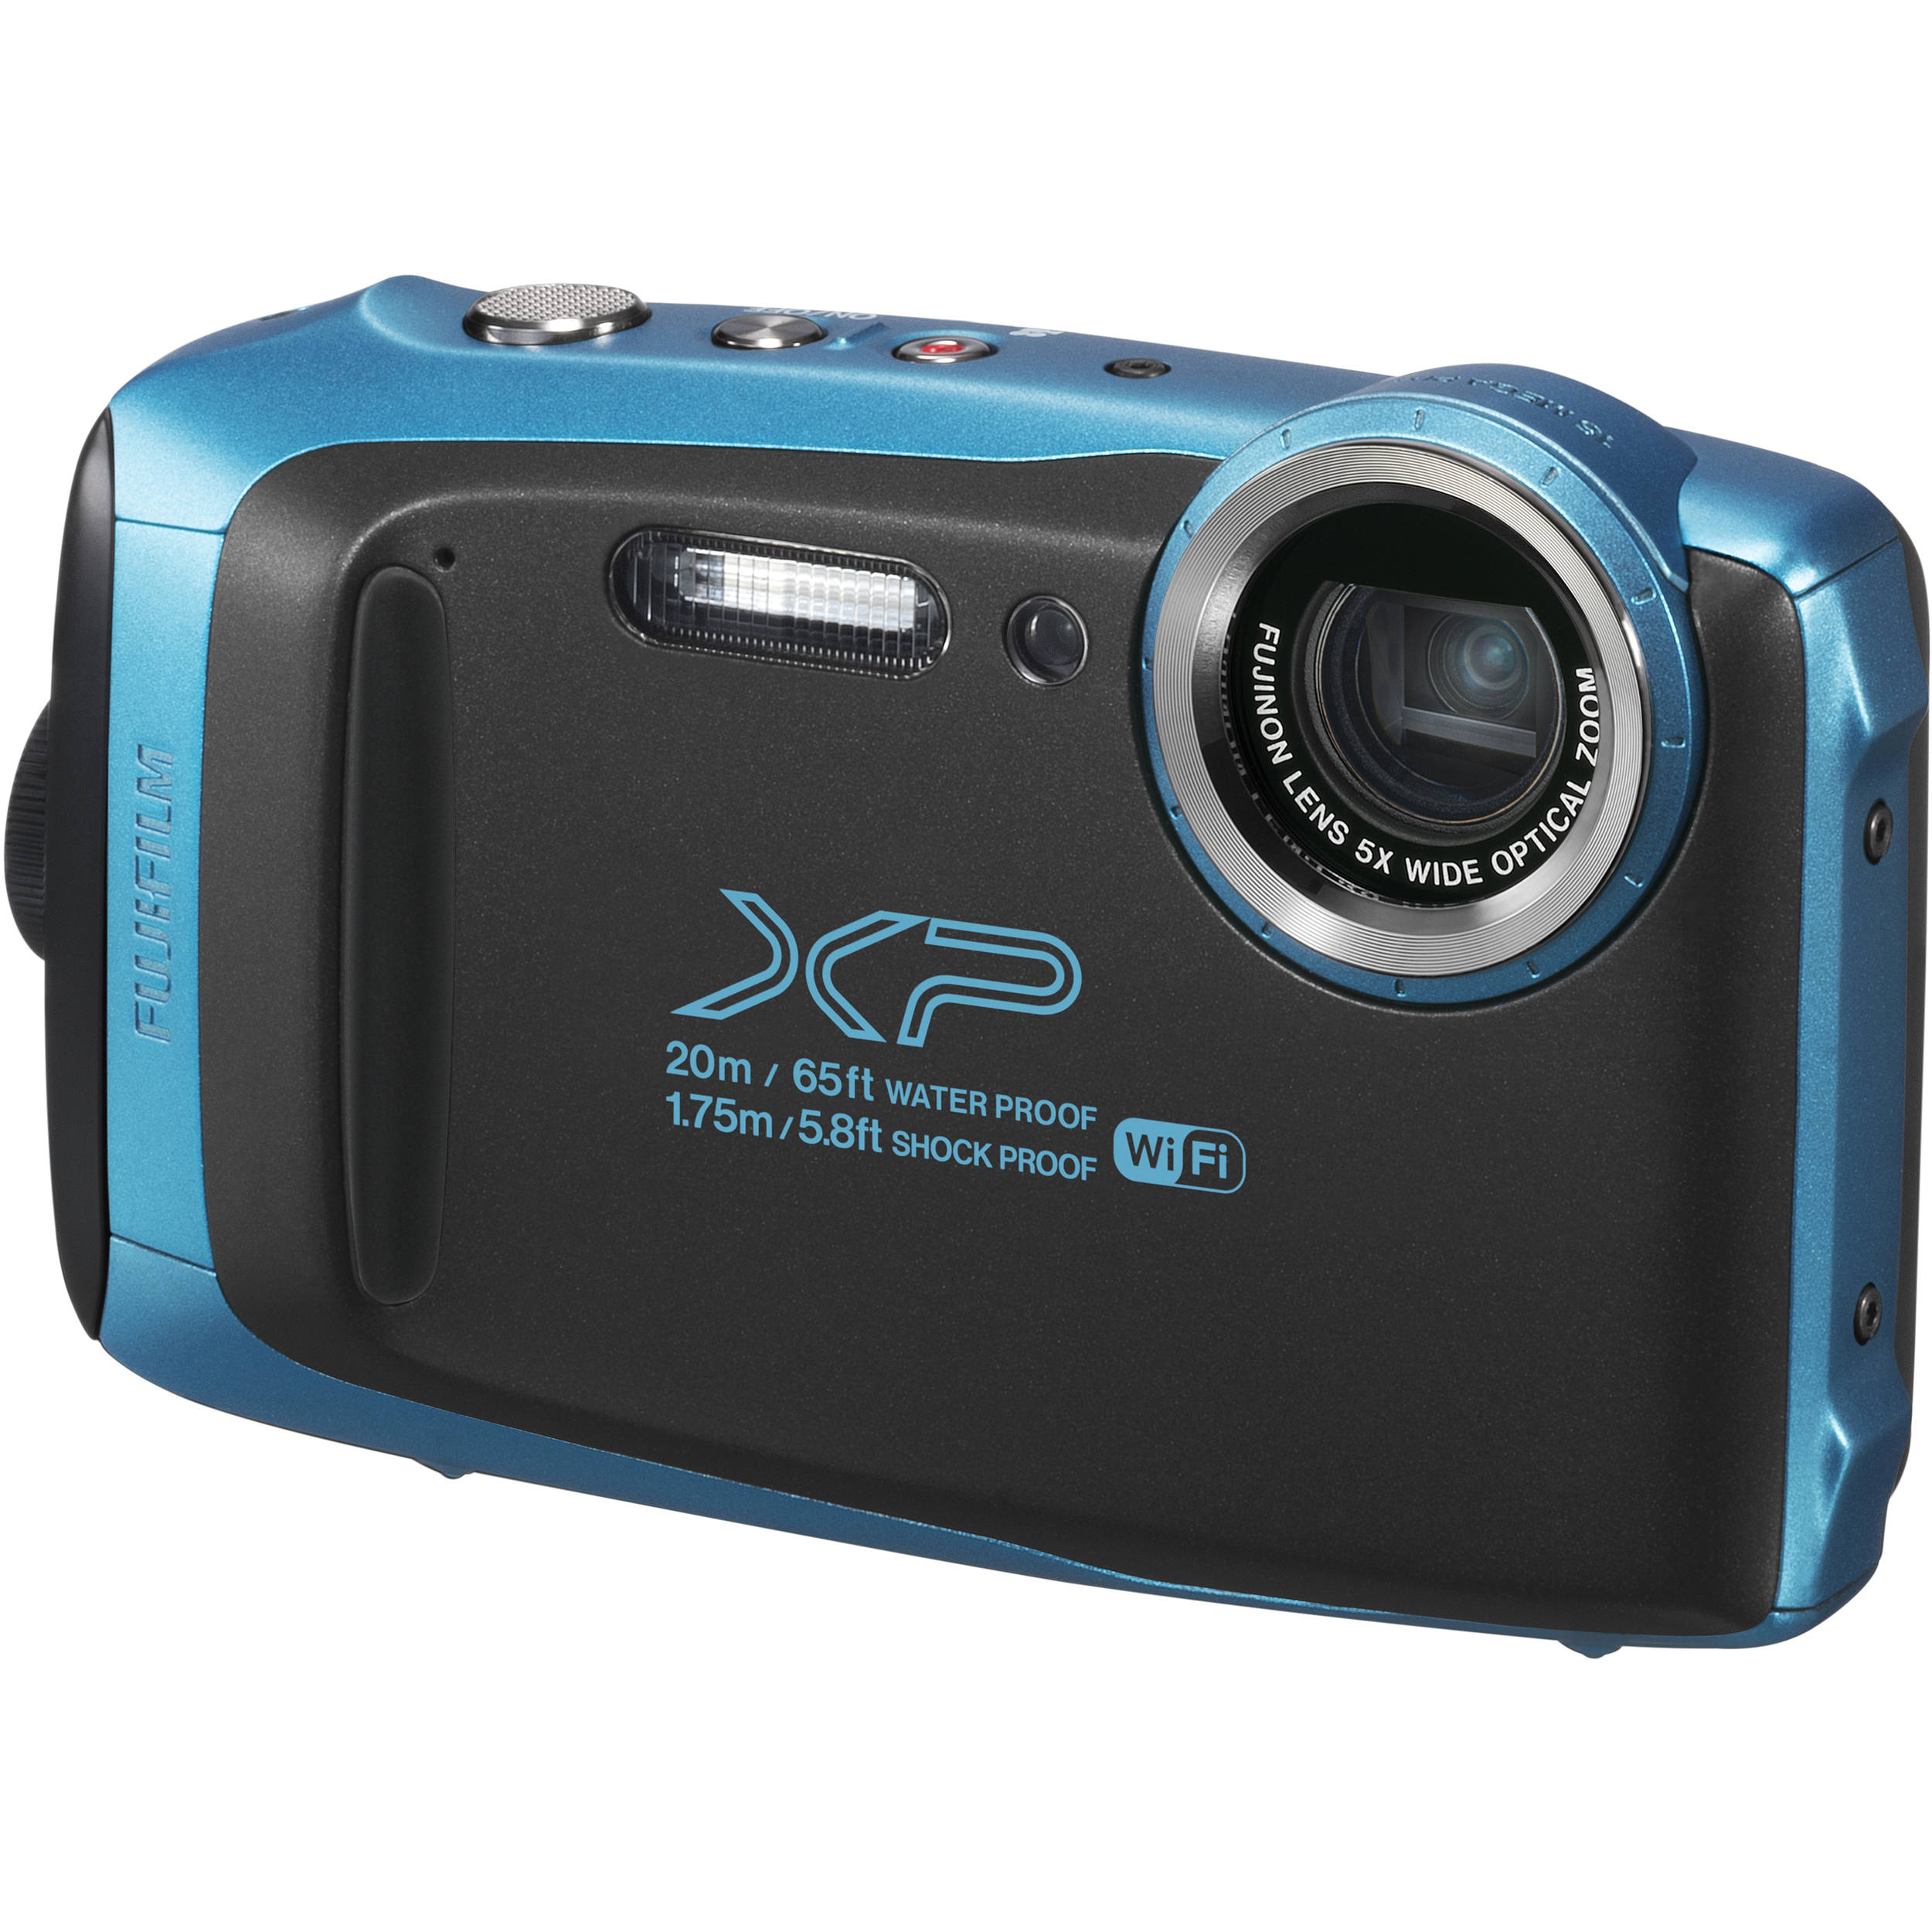 Image of Fujifilm Finepix XP130 Digital Cameras - Sky Blue